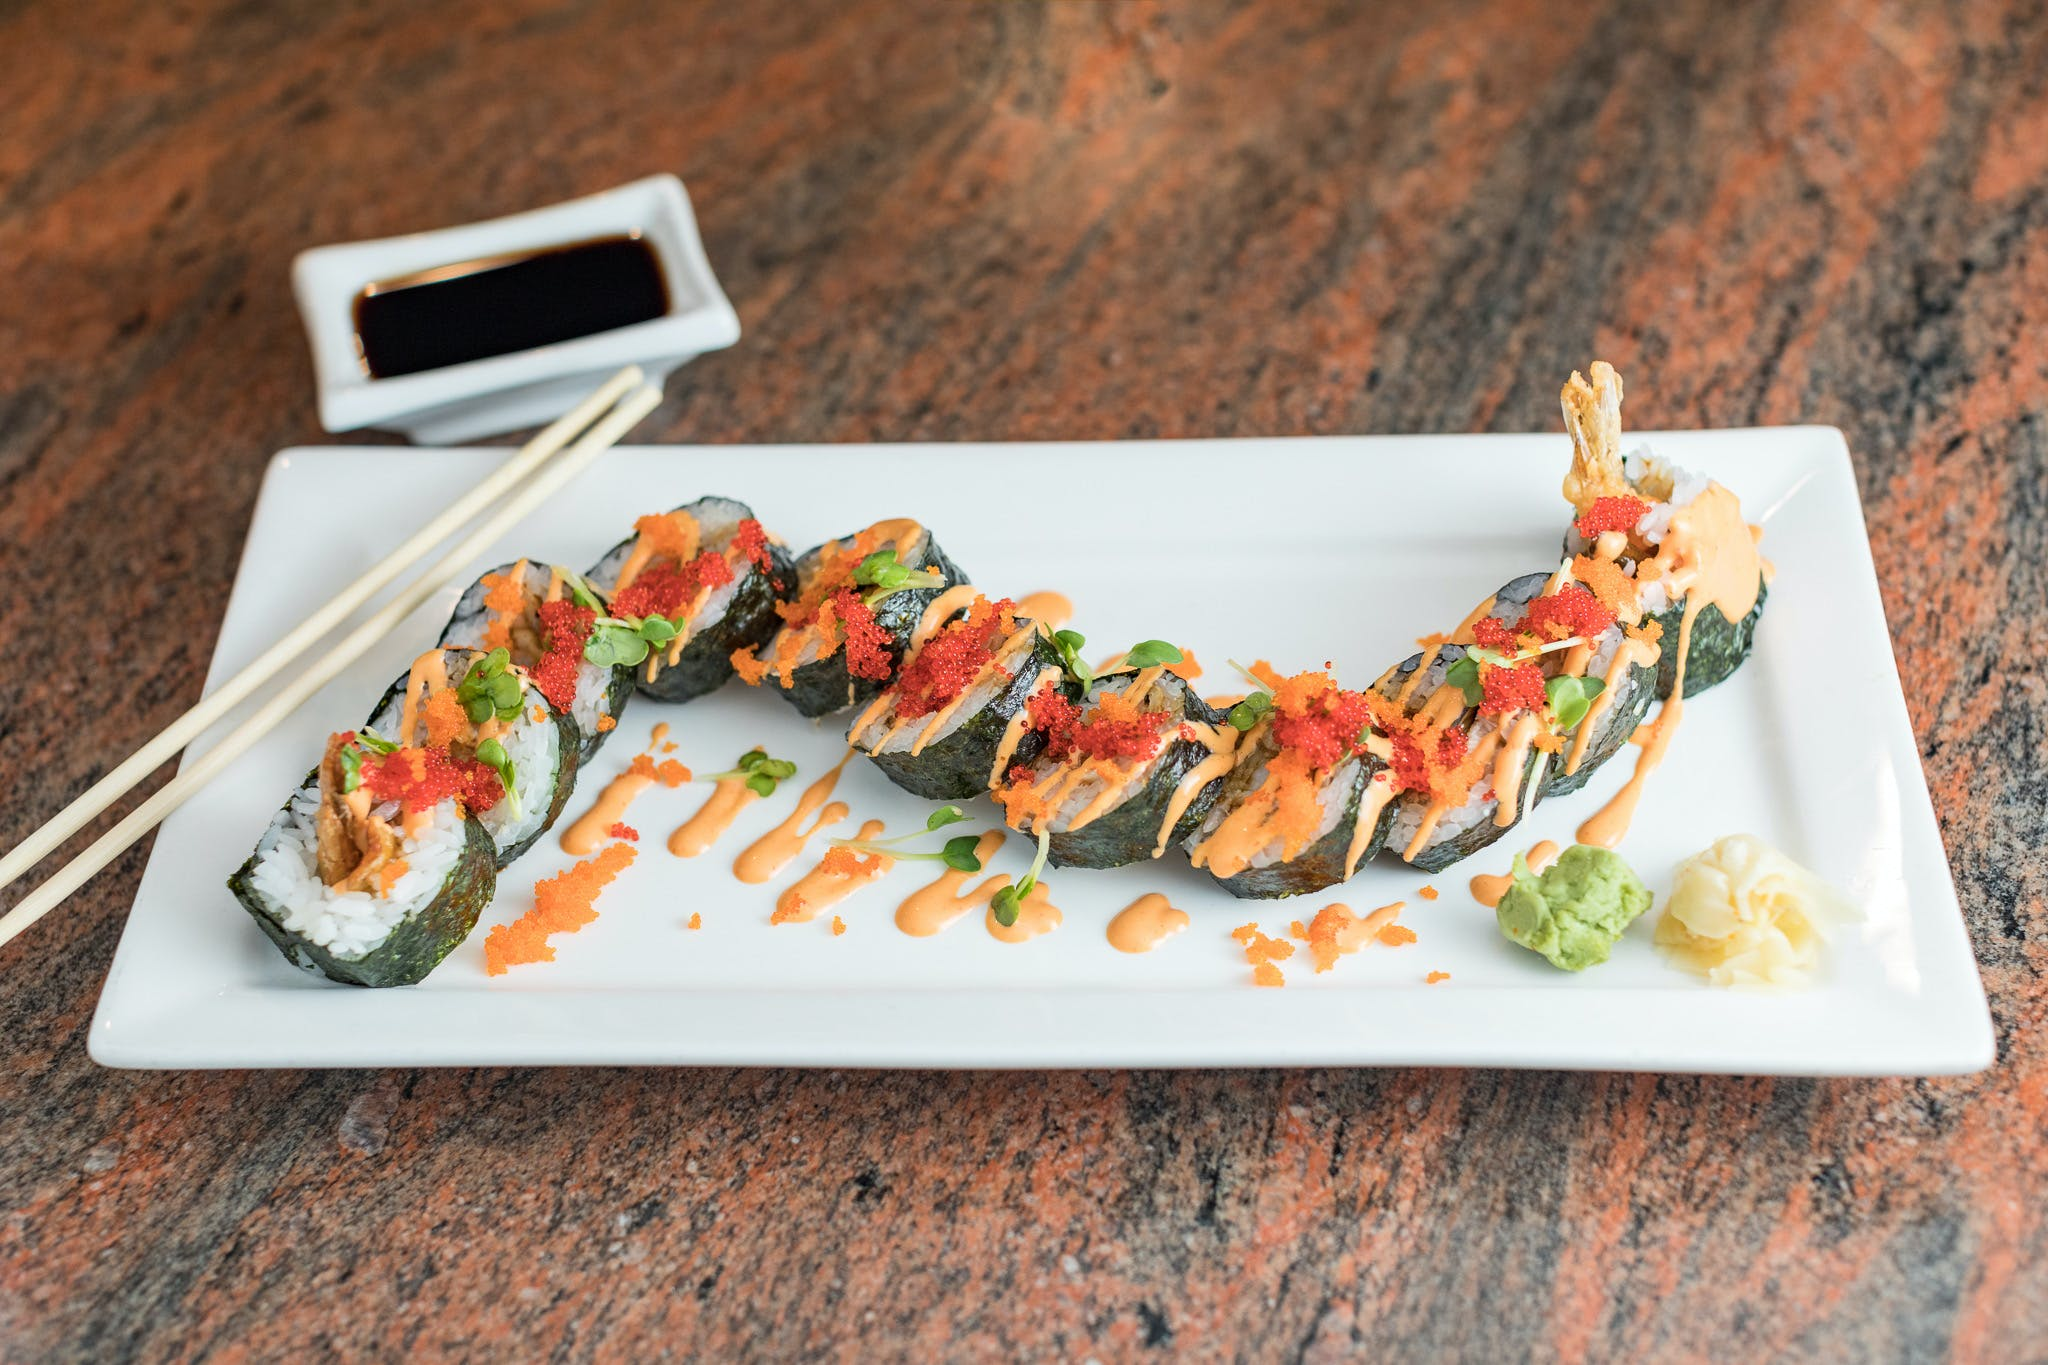 Red Dragon Roll from Shanghai Bistro in Eau Claire, WI